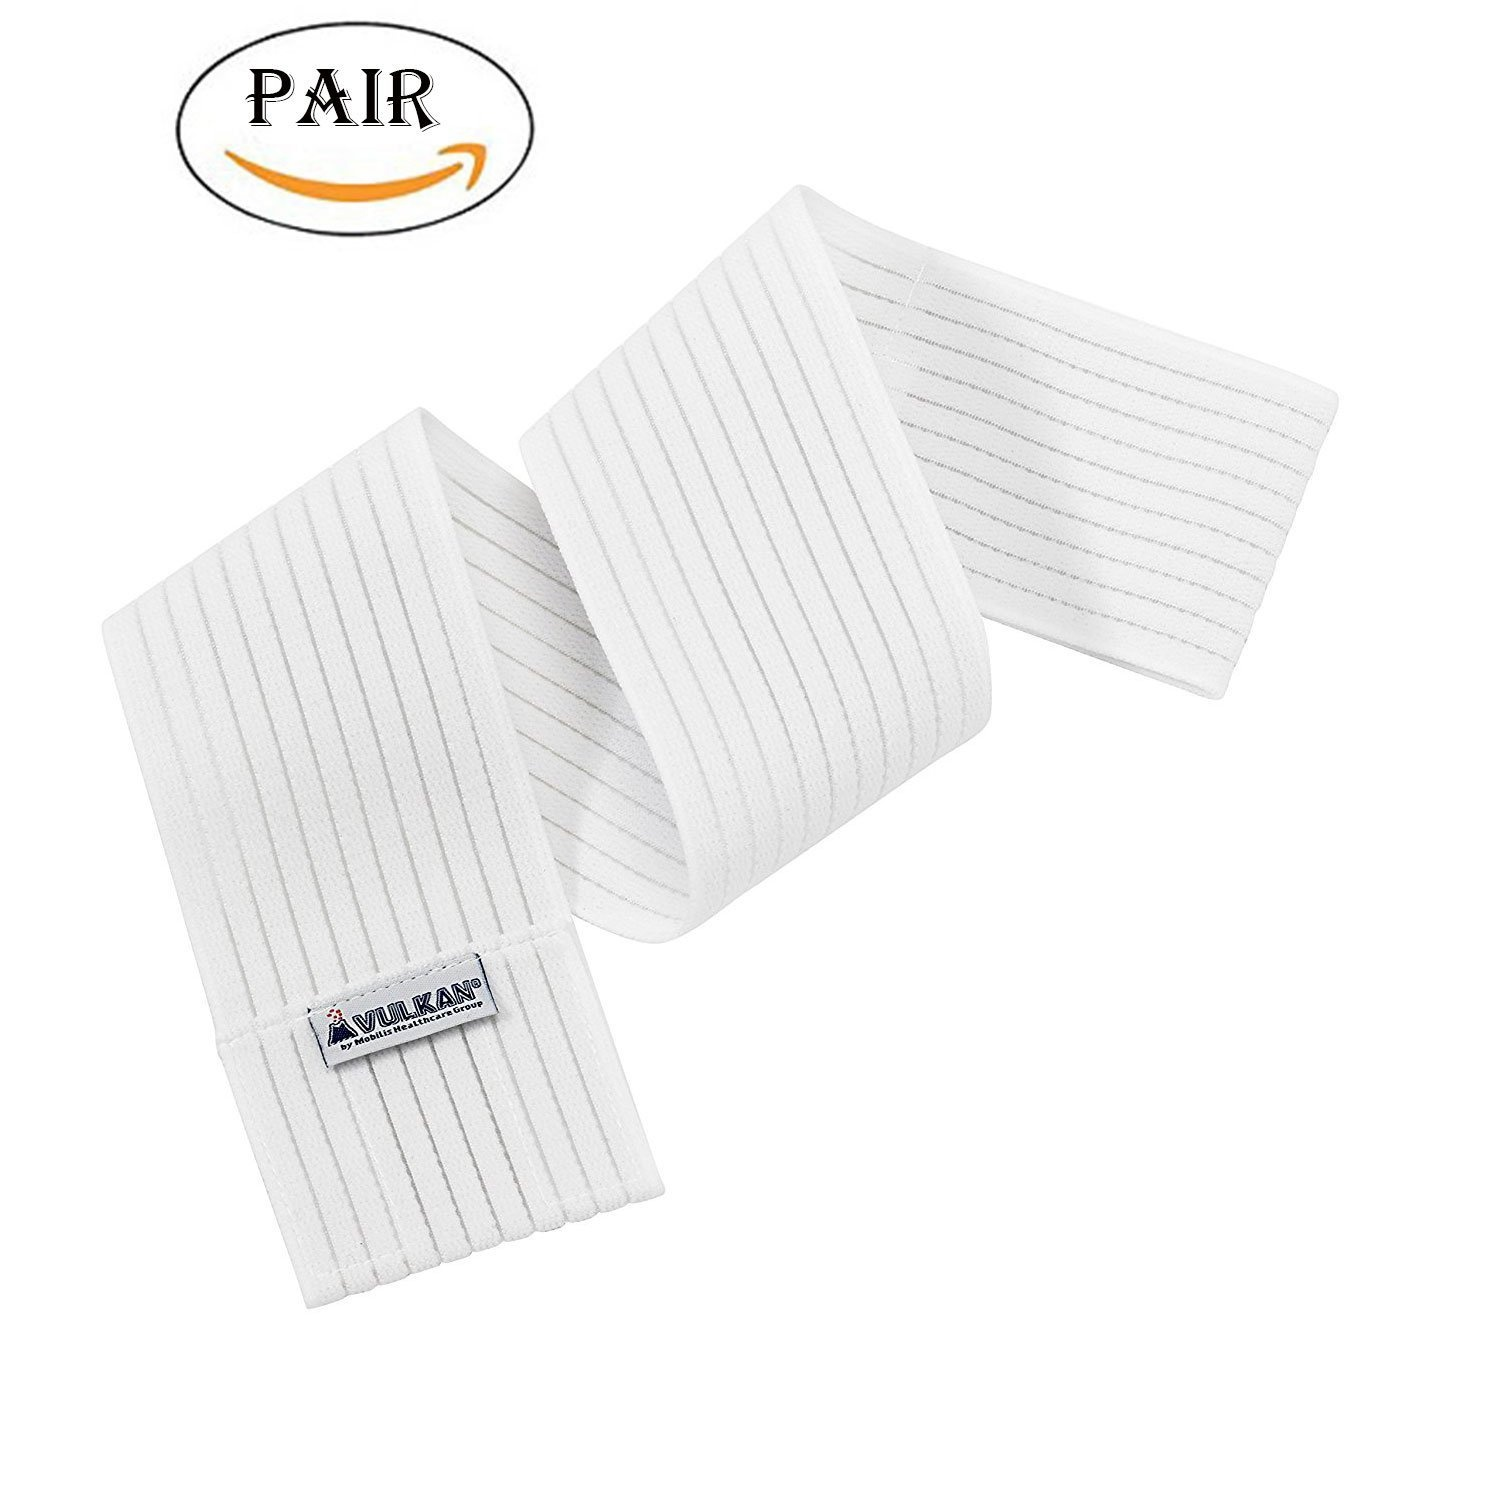 Elbow Sda Size Compression Controlled Fits Wrap Strap Guard Support Pad By Elasticated All Brace – One VulkanpairTennis Provide drxWBCeo